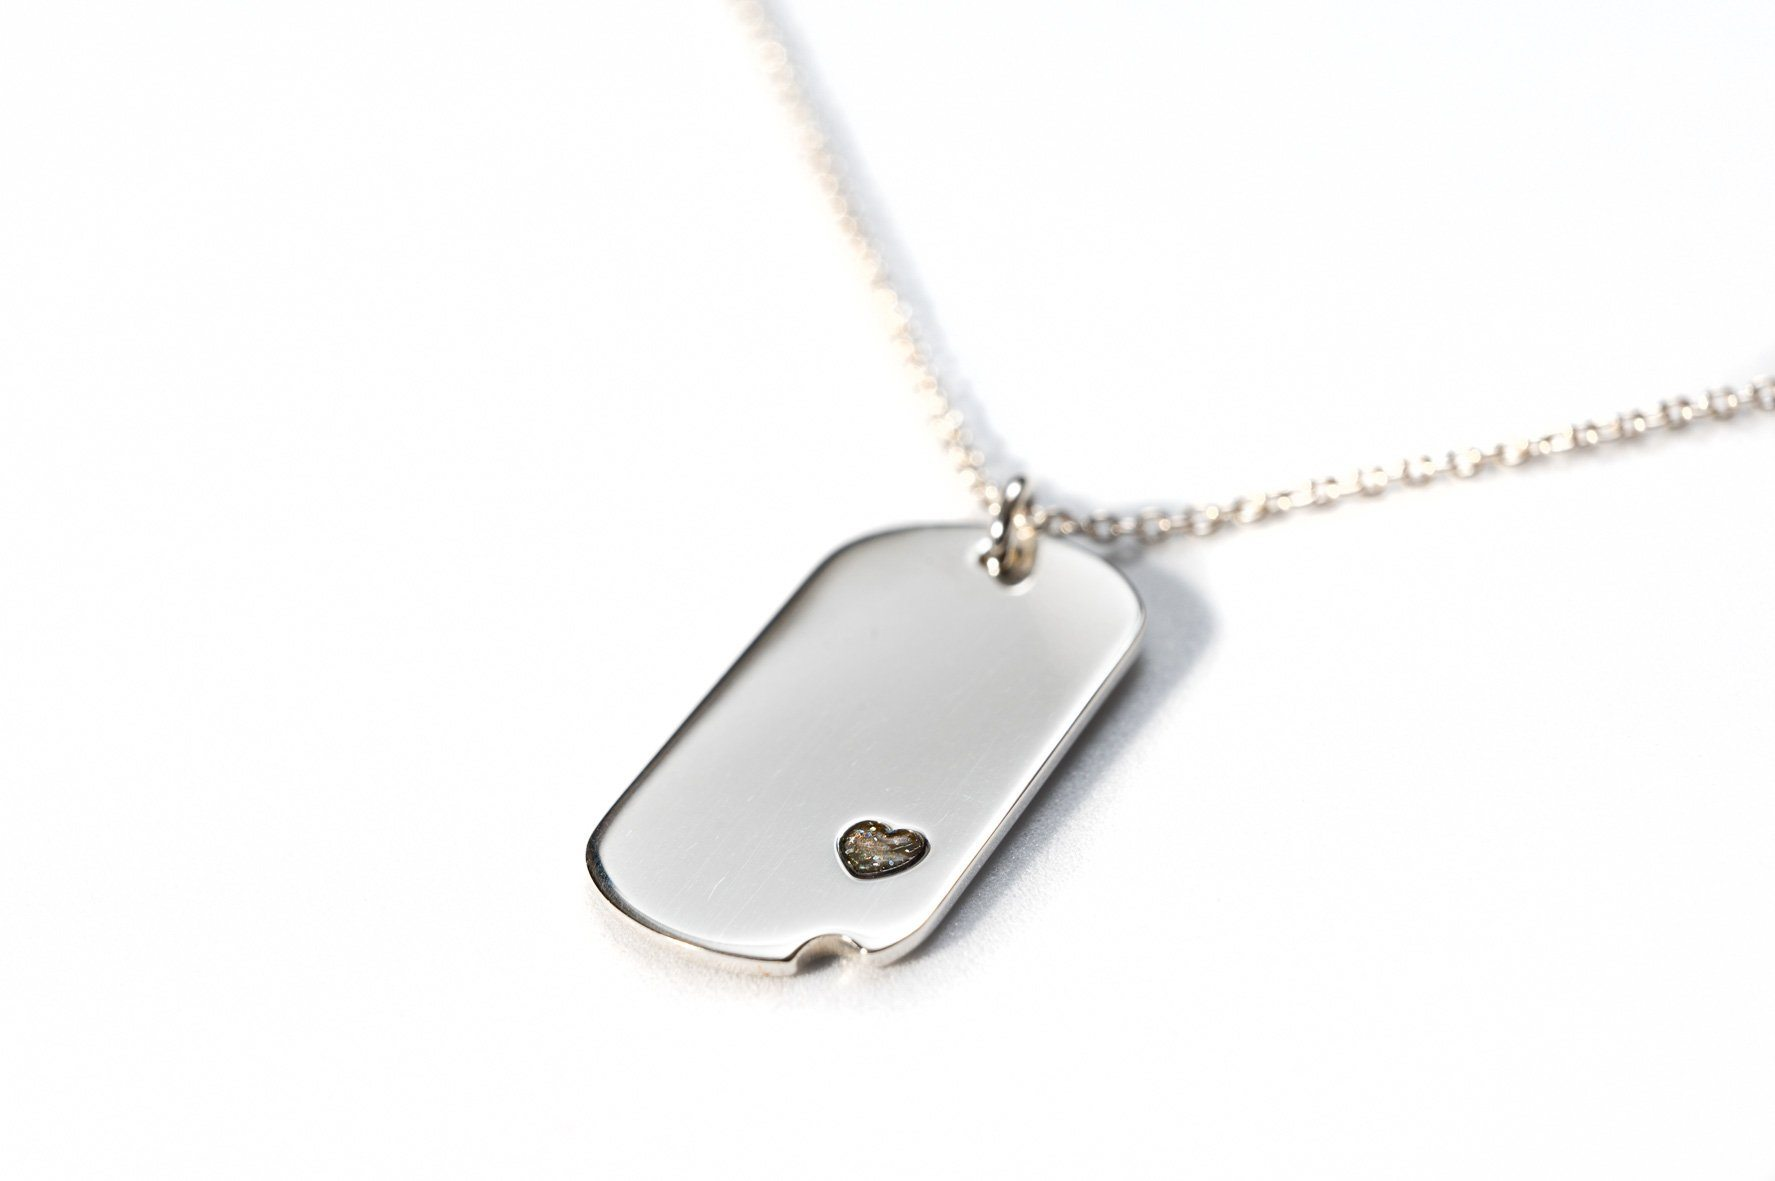 Sterling-Silver Dog Tag with Everence Inlay - Small Everence